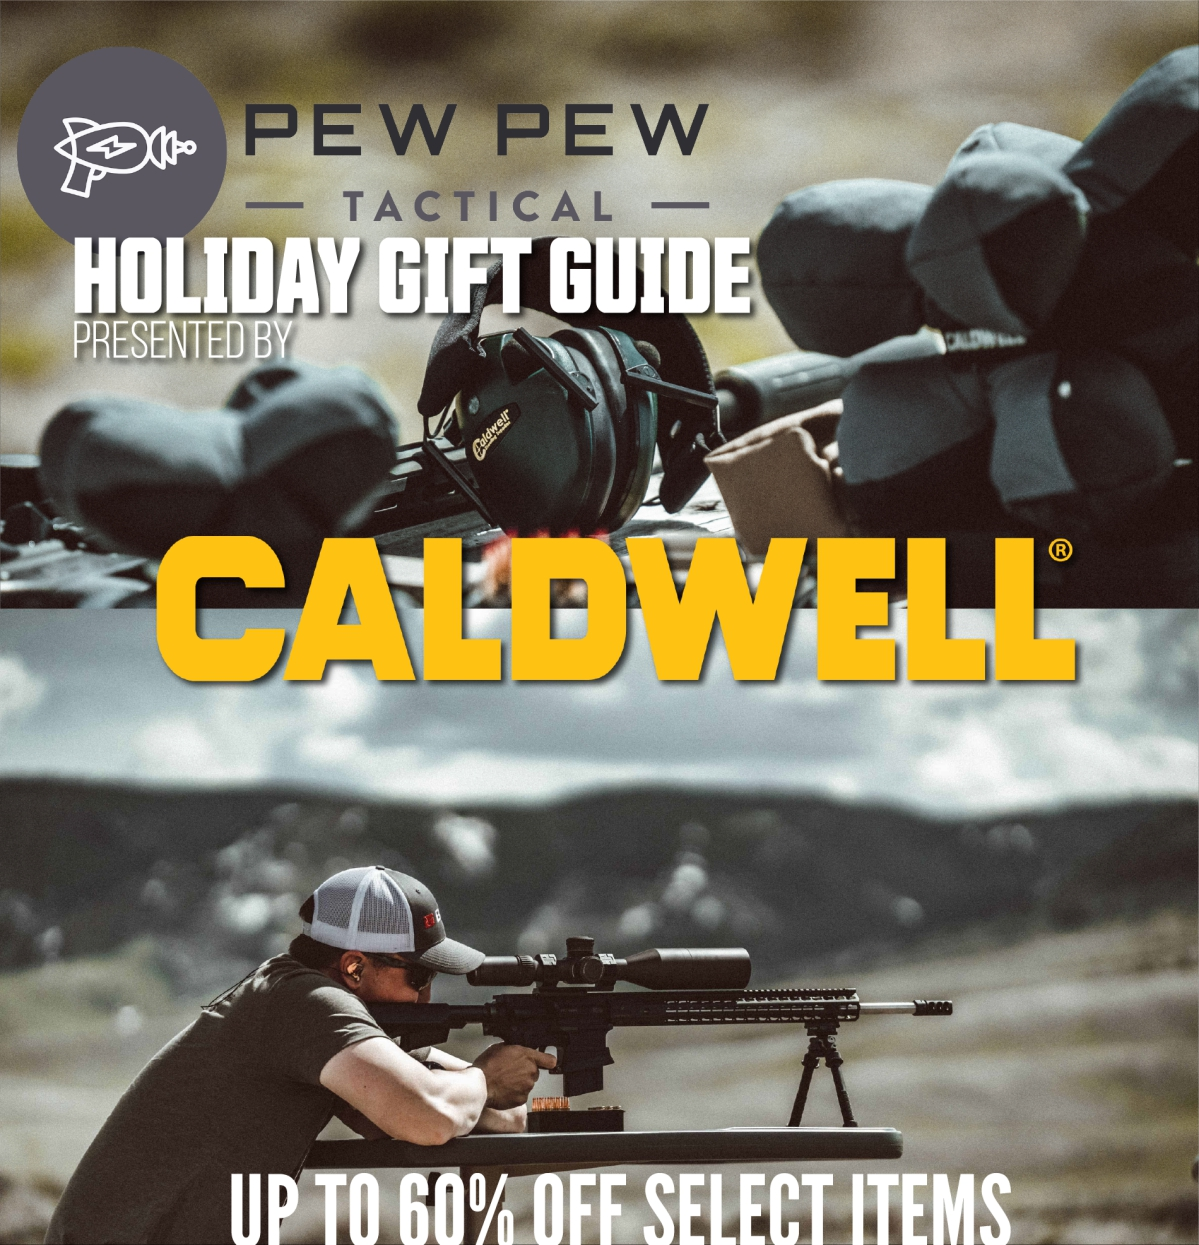 PEW PEW TACTICAL - Holiday Gift Guide